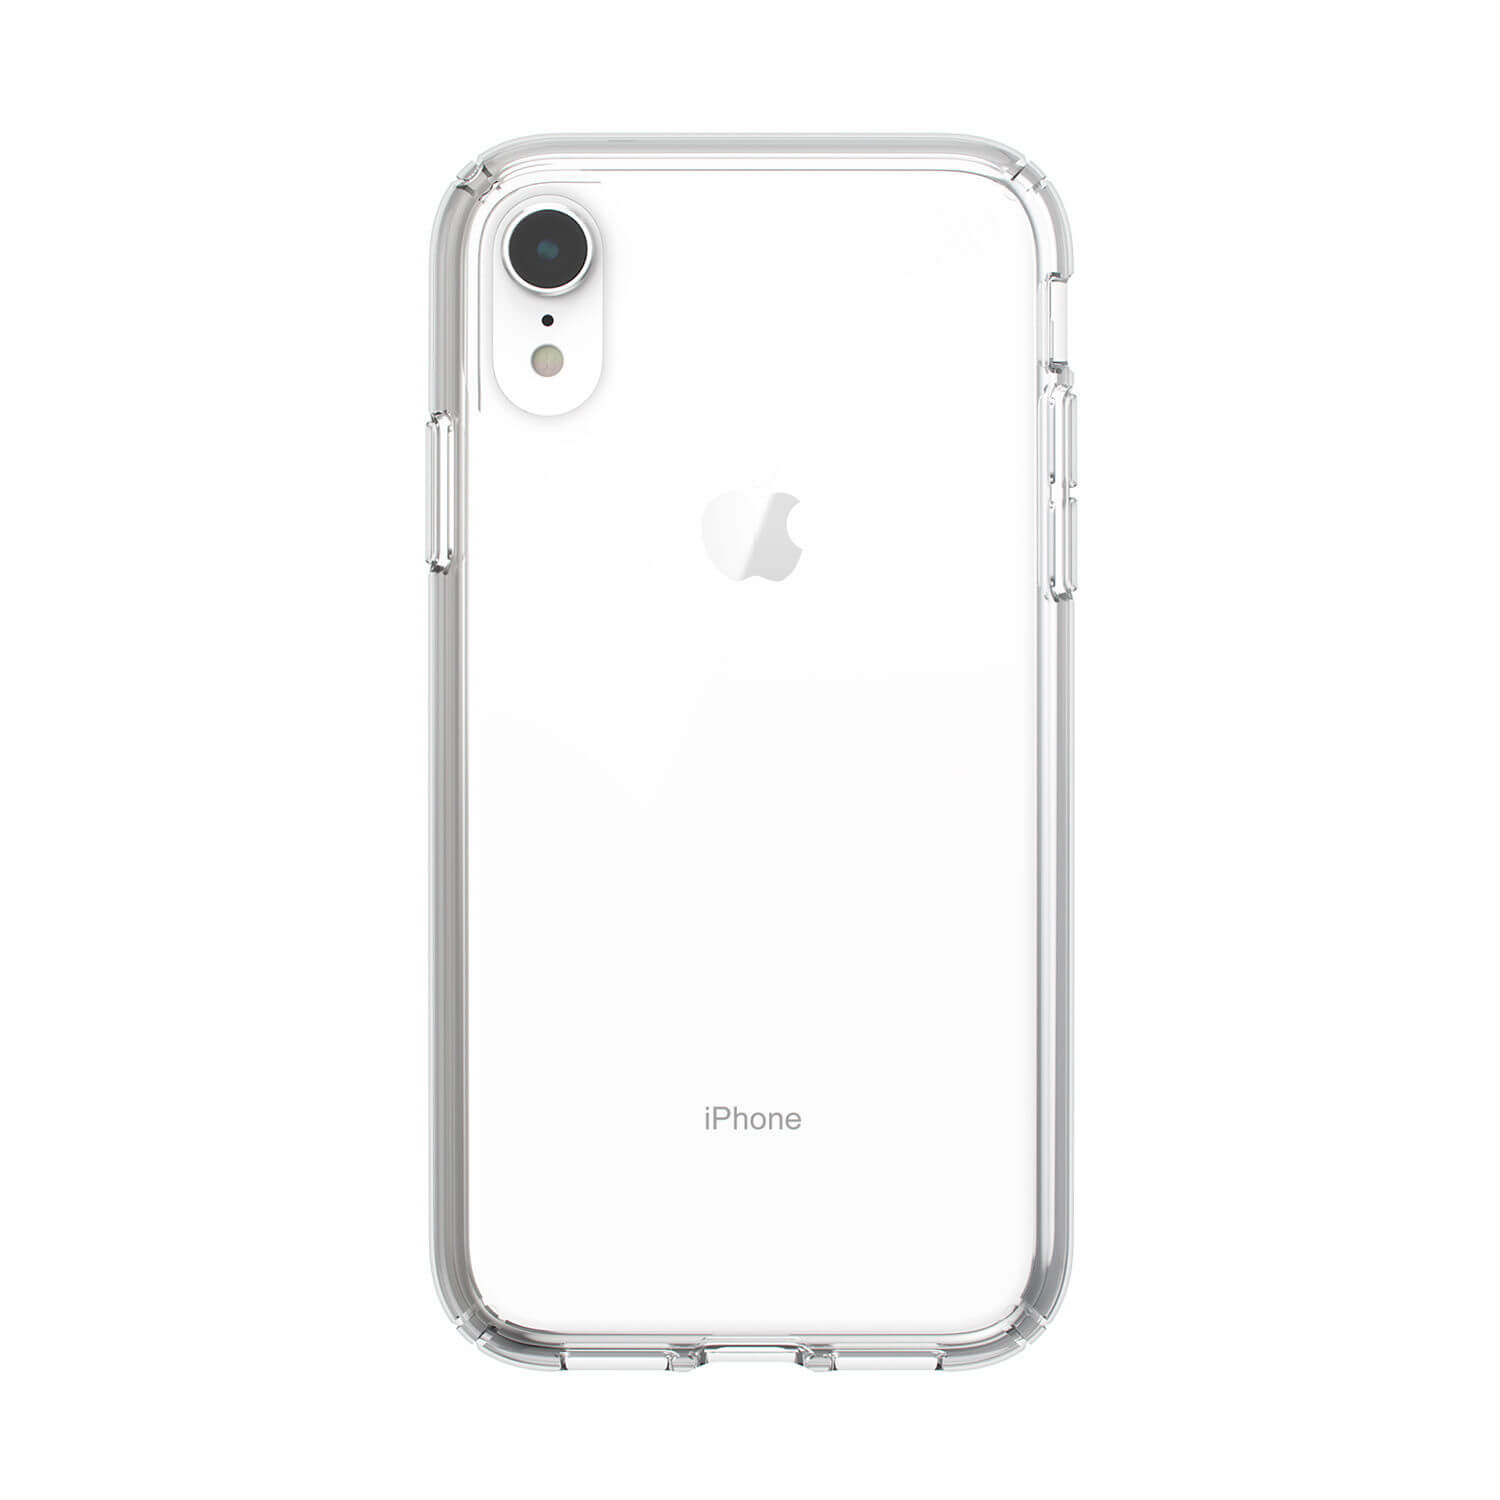 Image result for Speck Presidio case